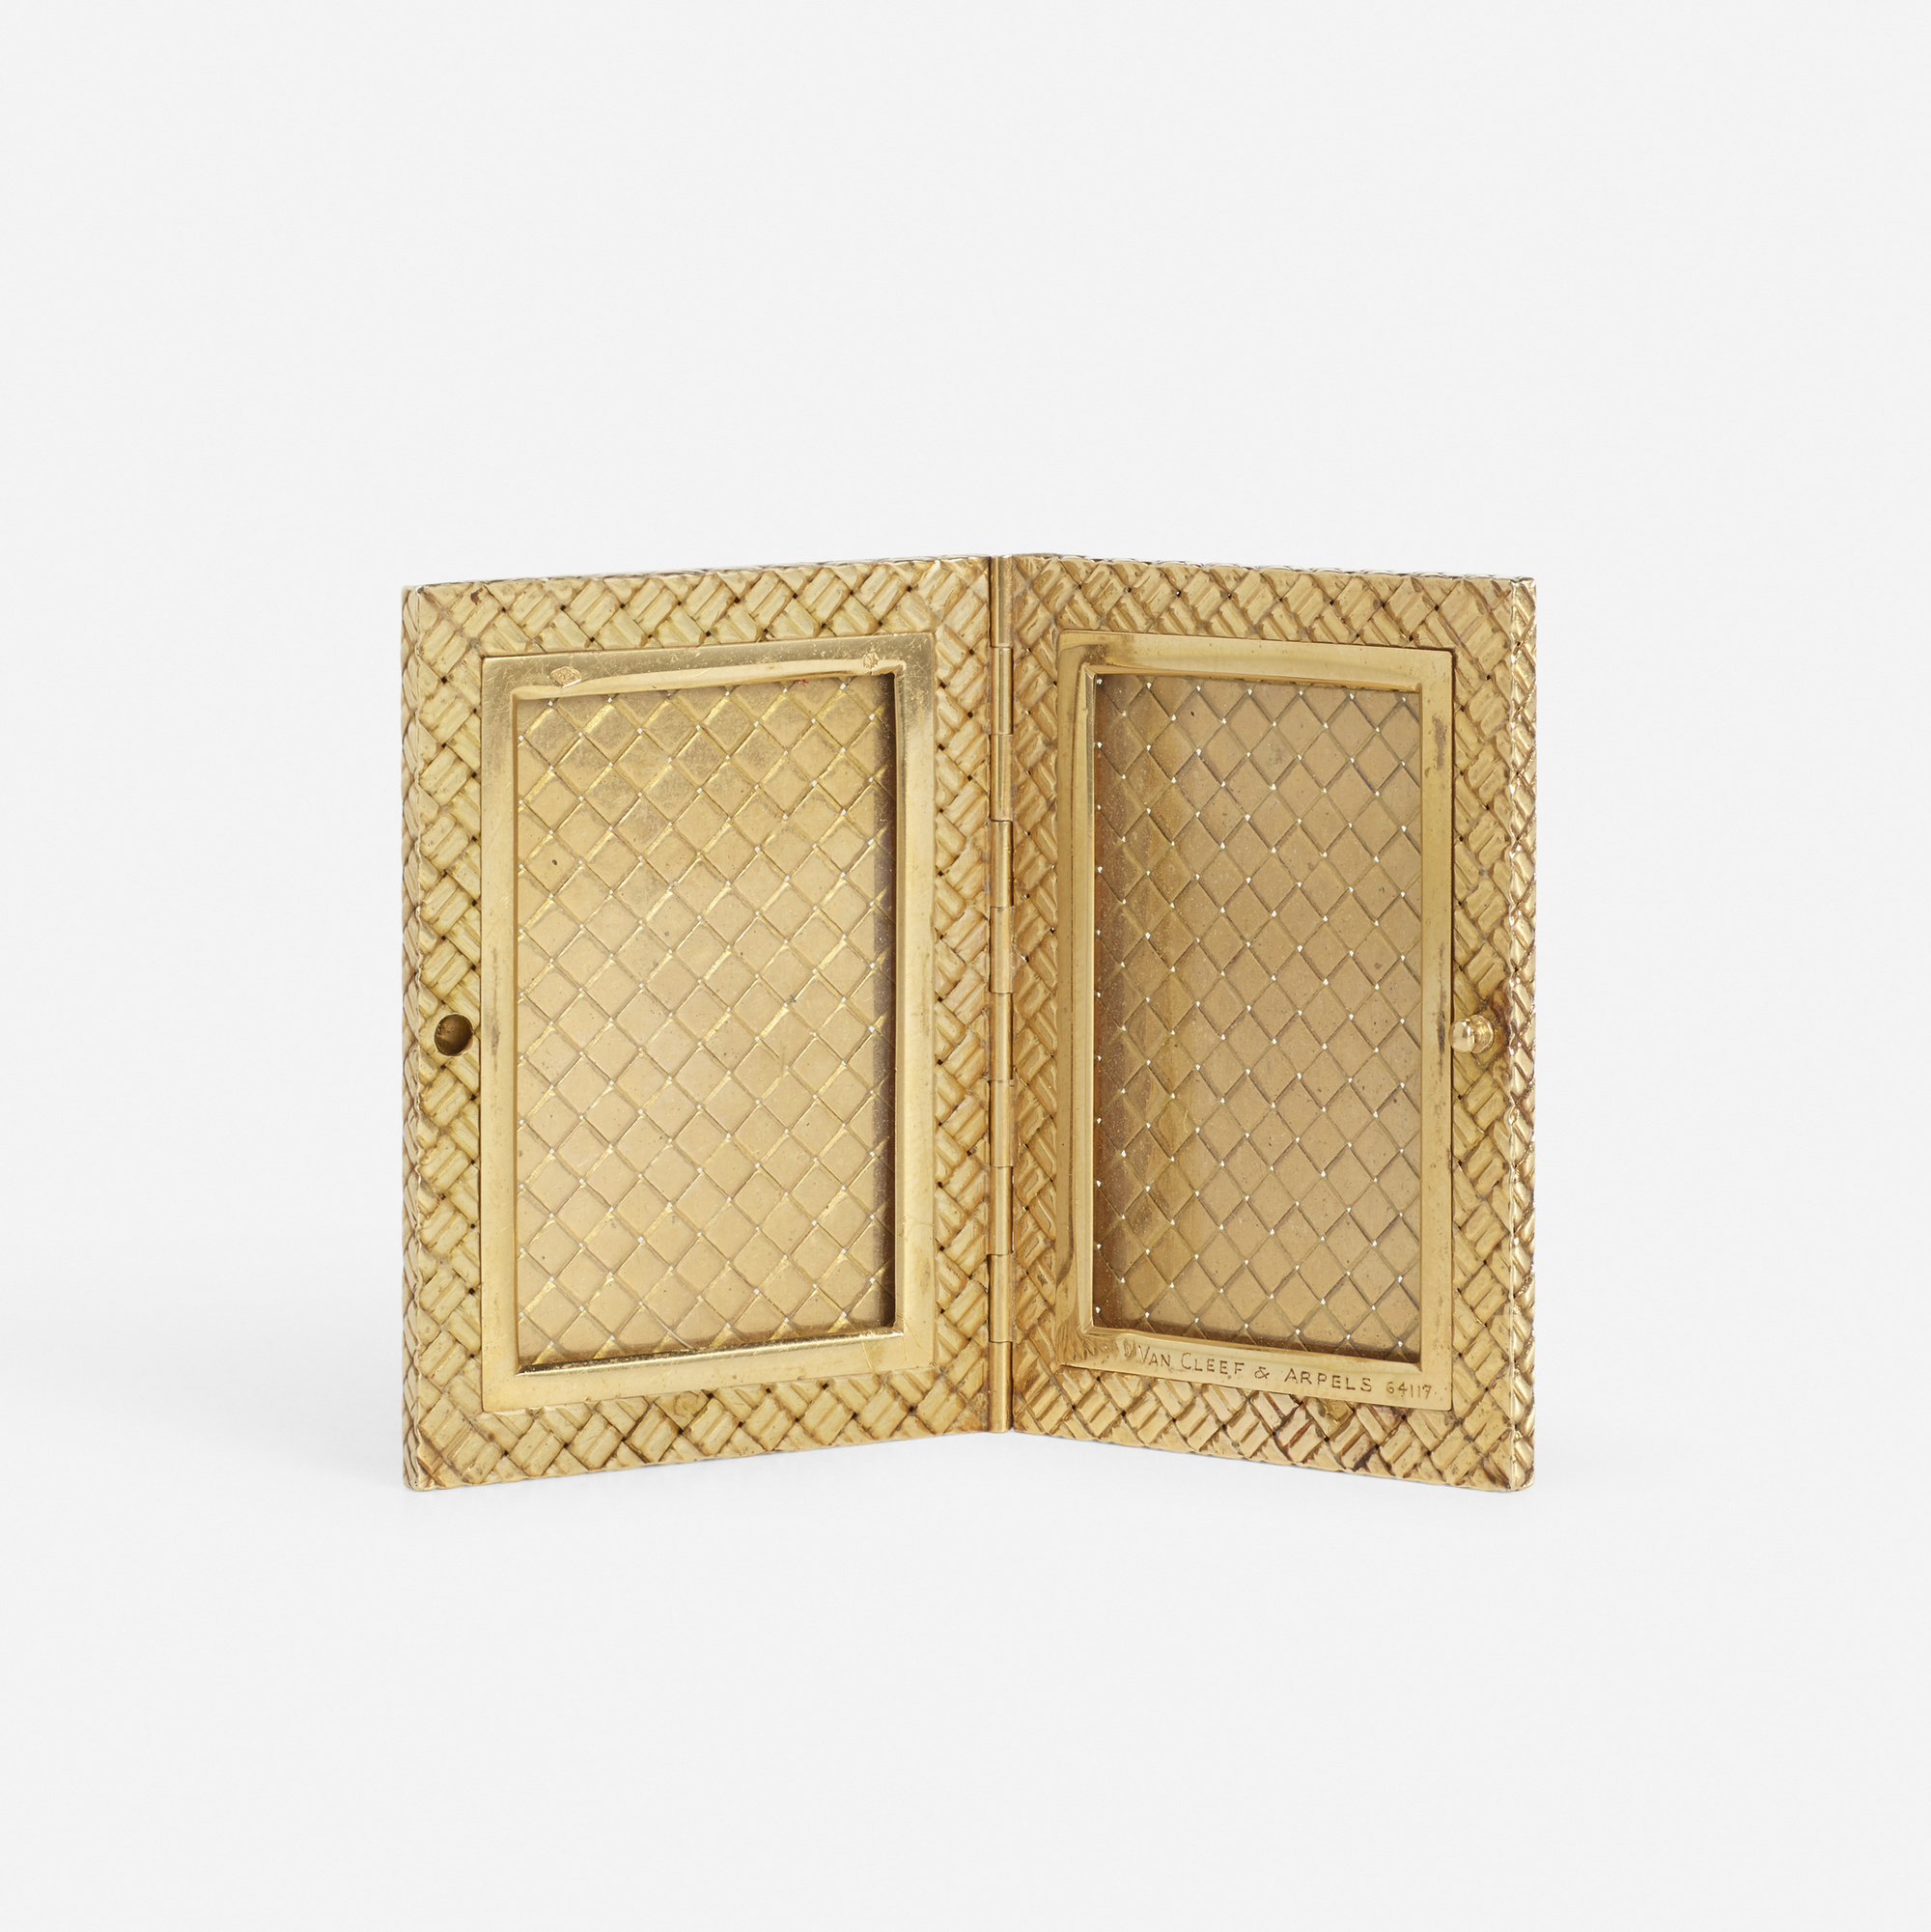 219: Van Cleef & Arpels / A gold traveling picture frame (2 of 2)